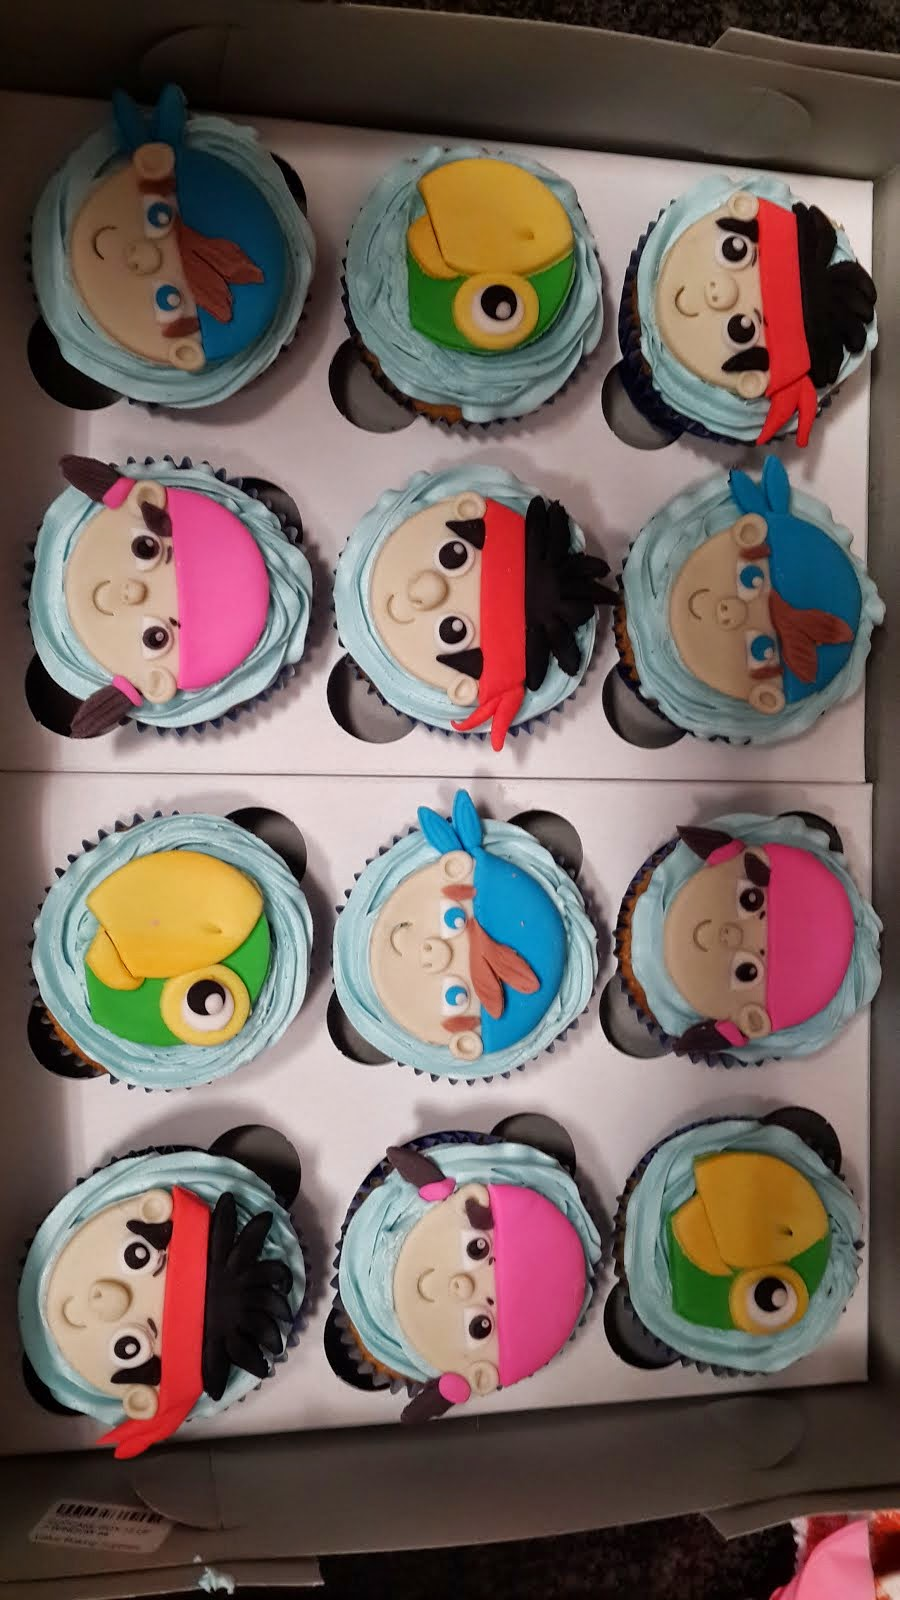 Jake & the Neverland Pirates Cupcakes